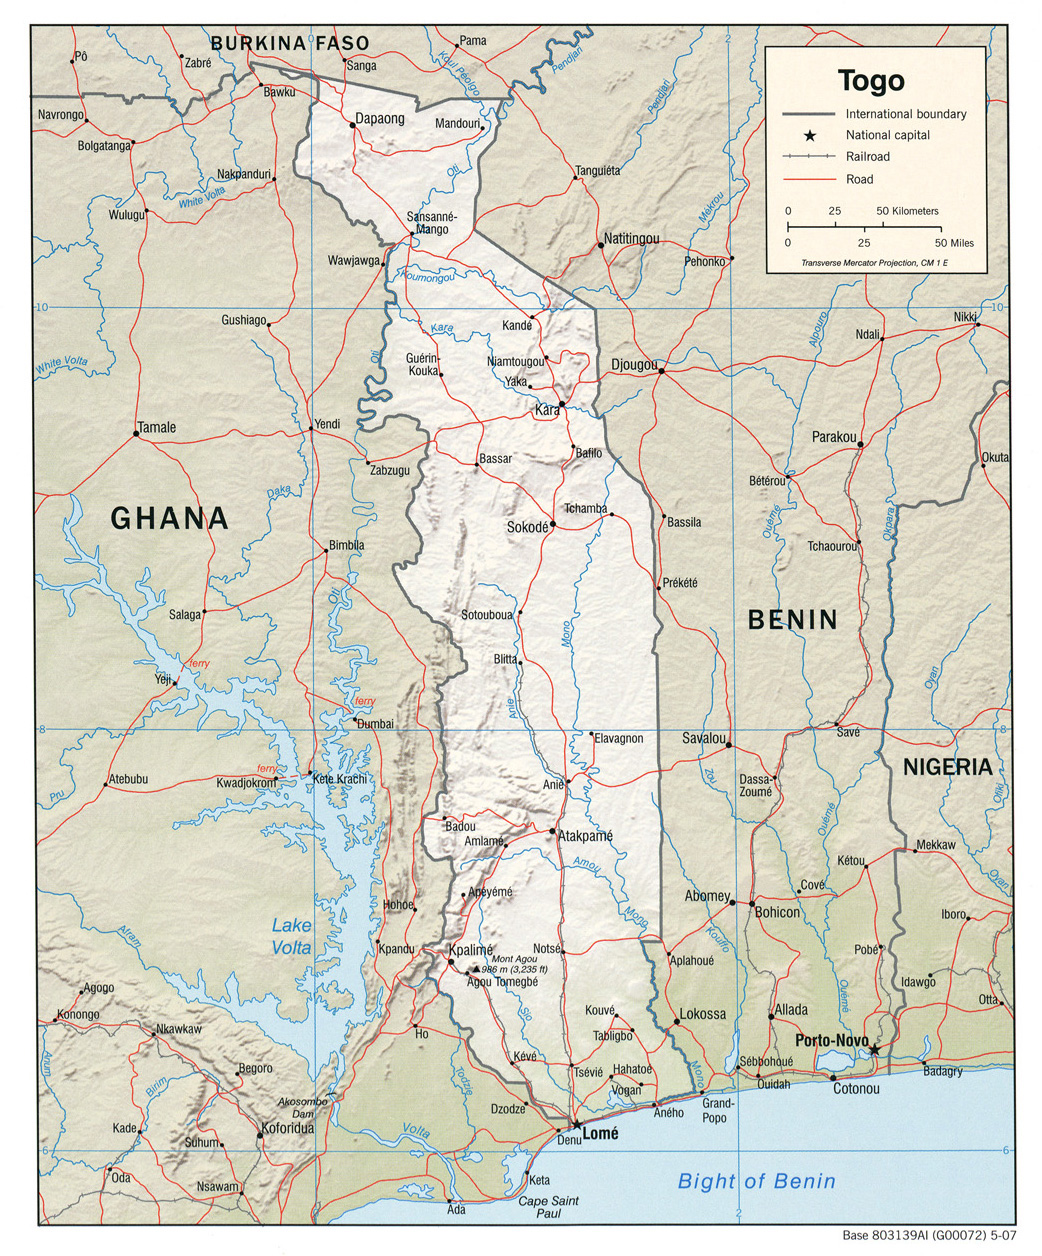 Detailed relief and political map of Togo with roads and cities